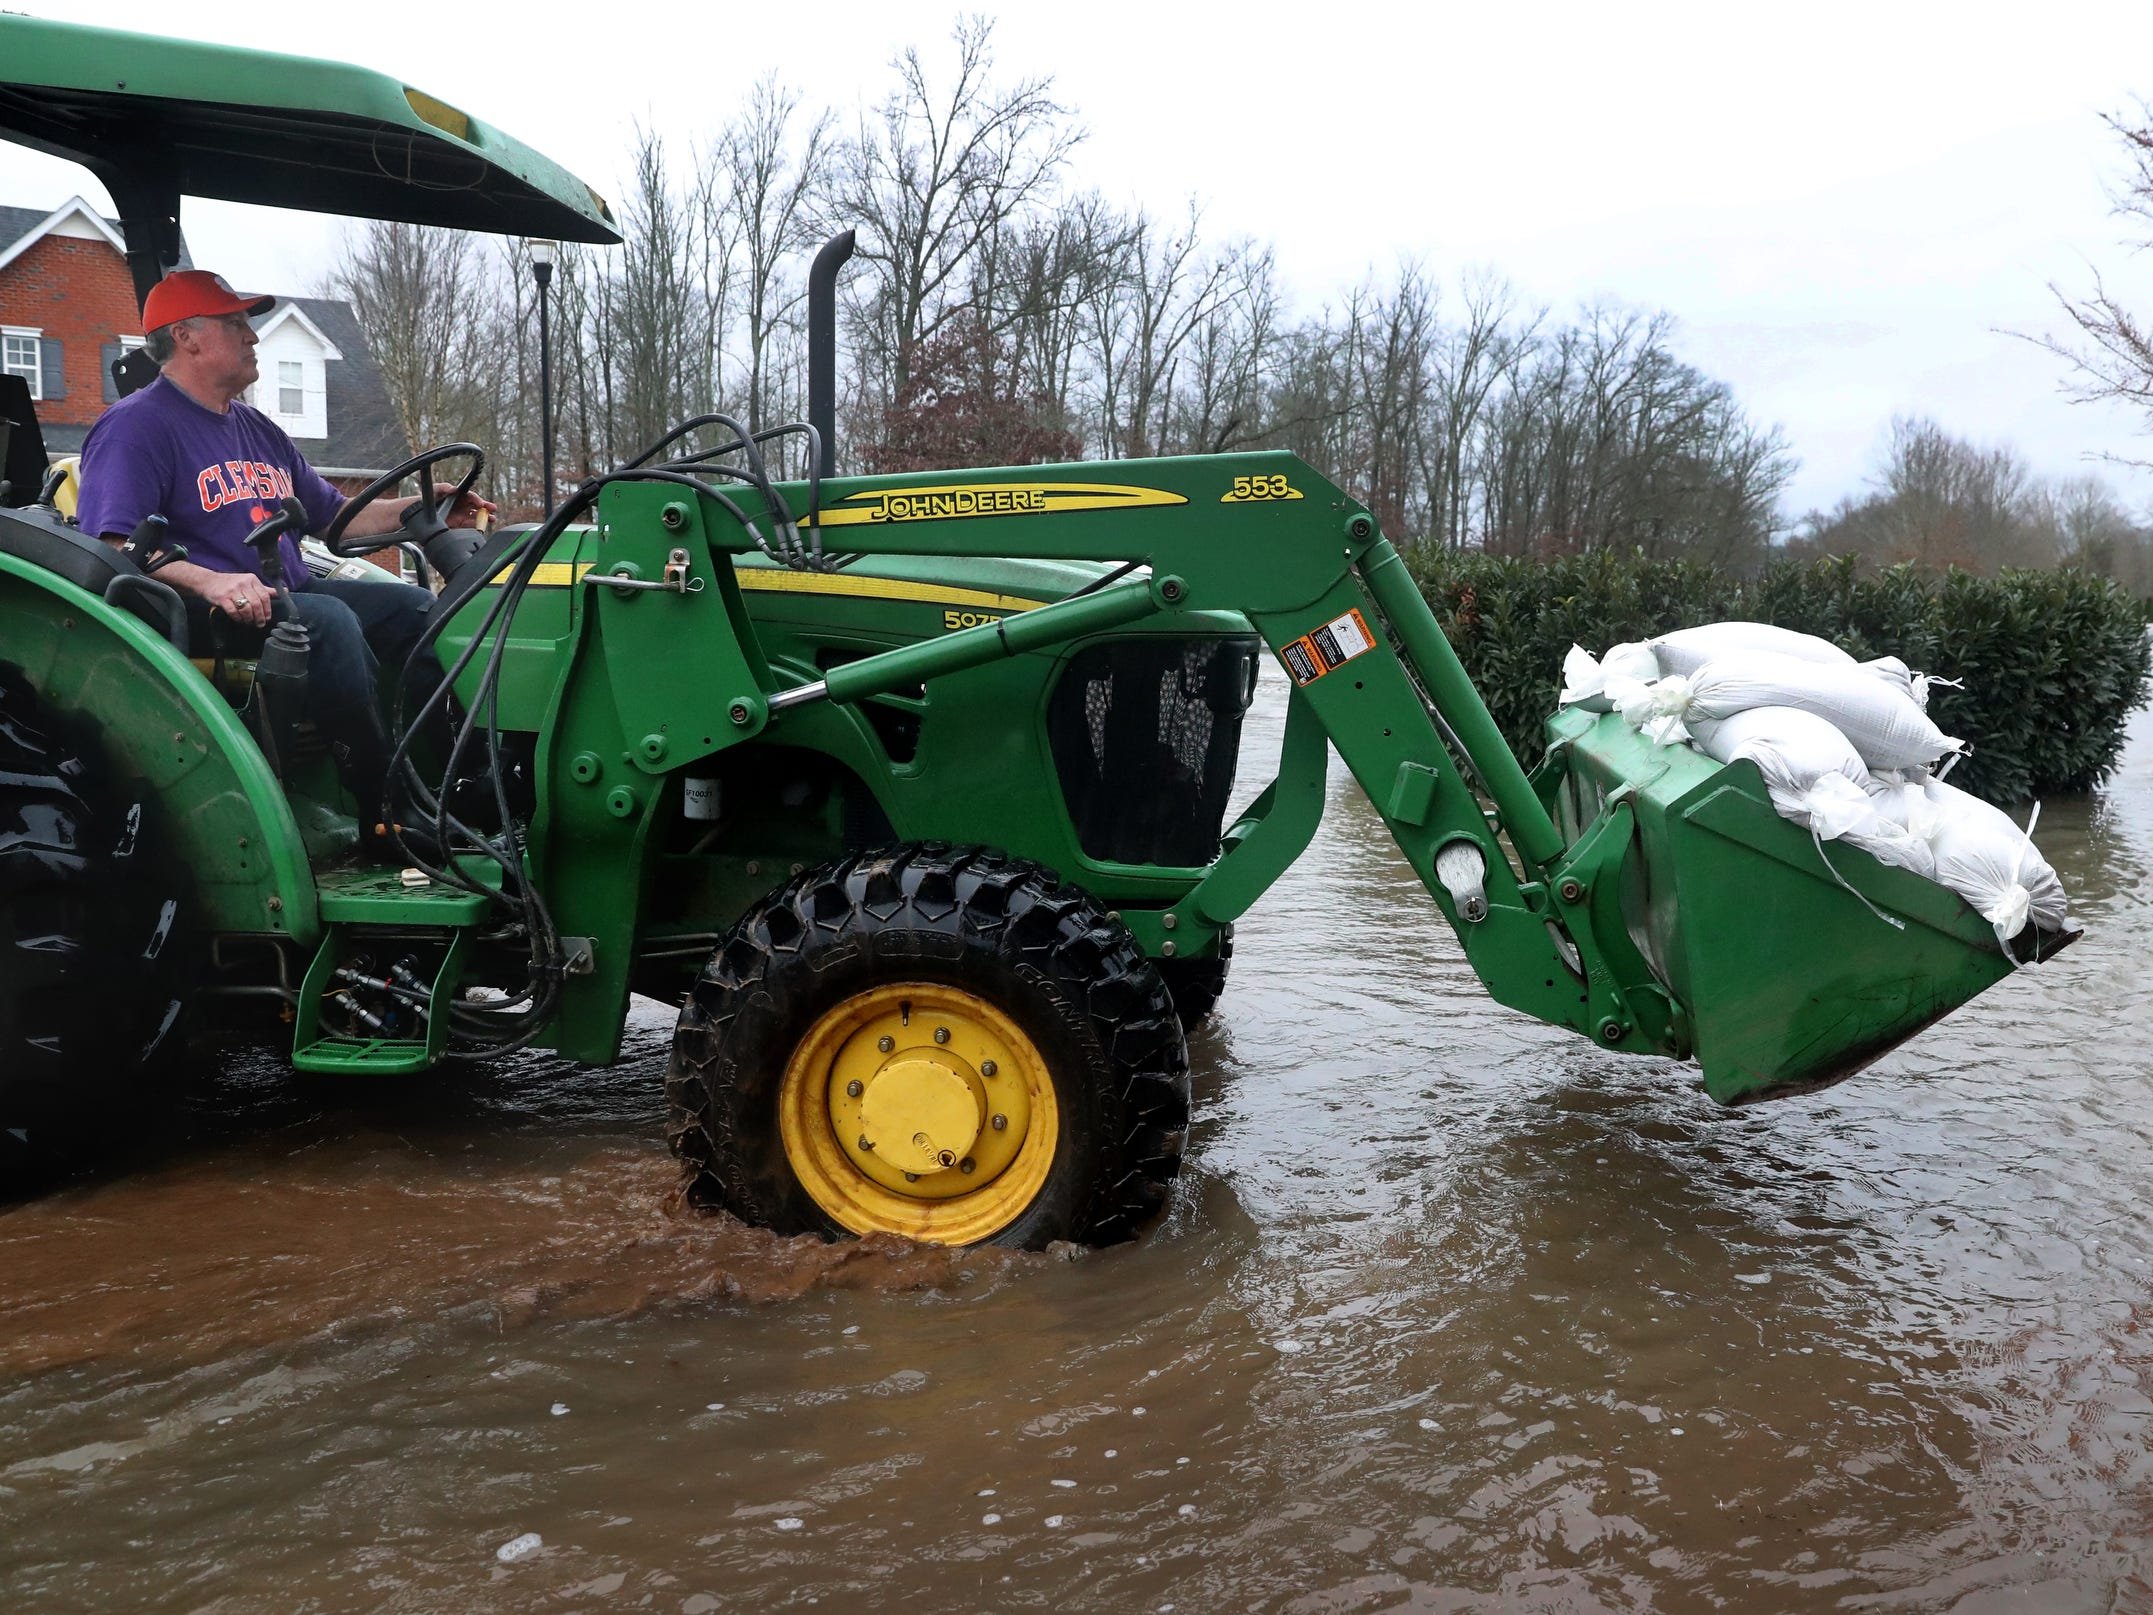 Sand bags are moved by tractor to a home on Steelson Way in Murfreesboro, on Saturday, Feb. 23, 2019, to help protect a home.